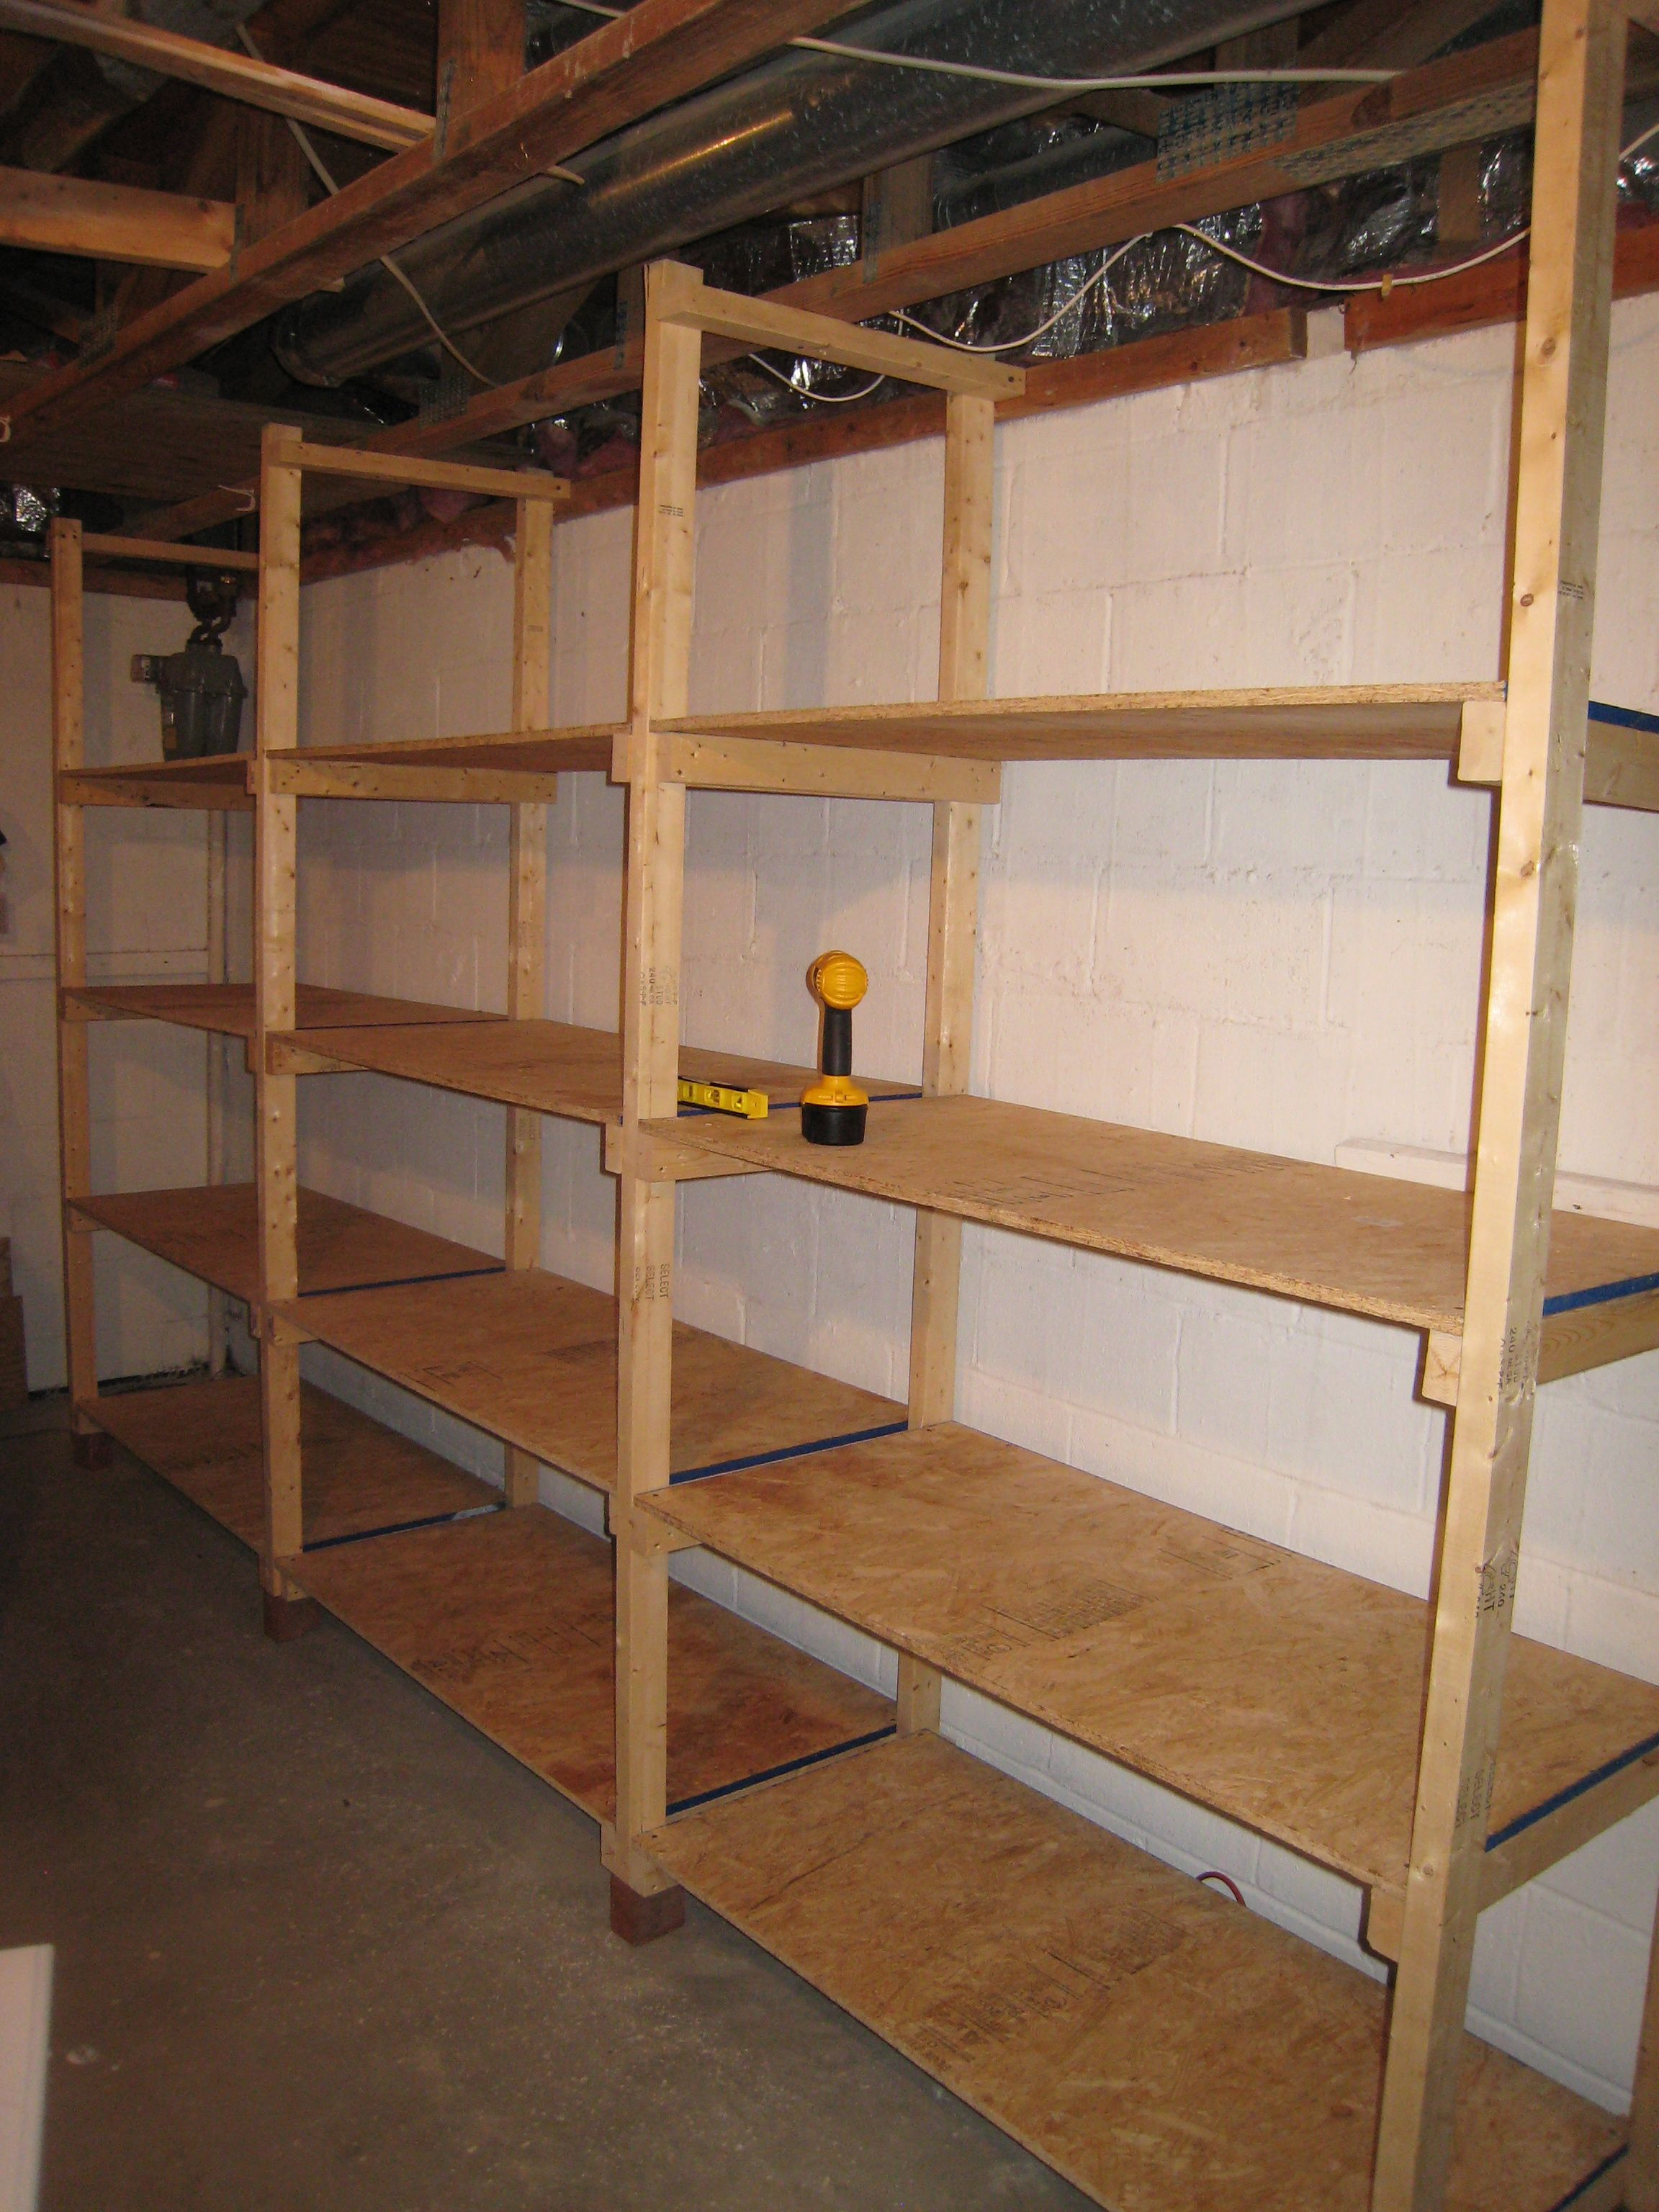 shelves diy patterns garage ideas shelf guide shelving